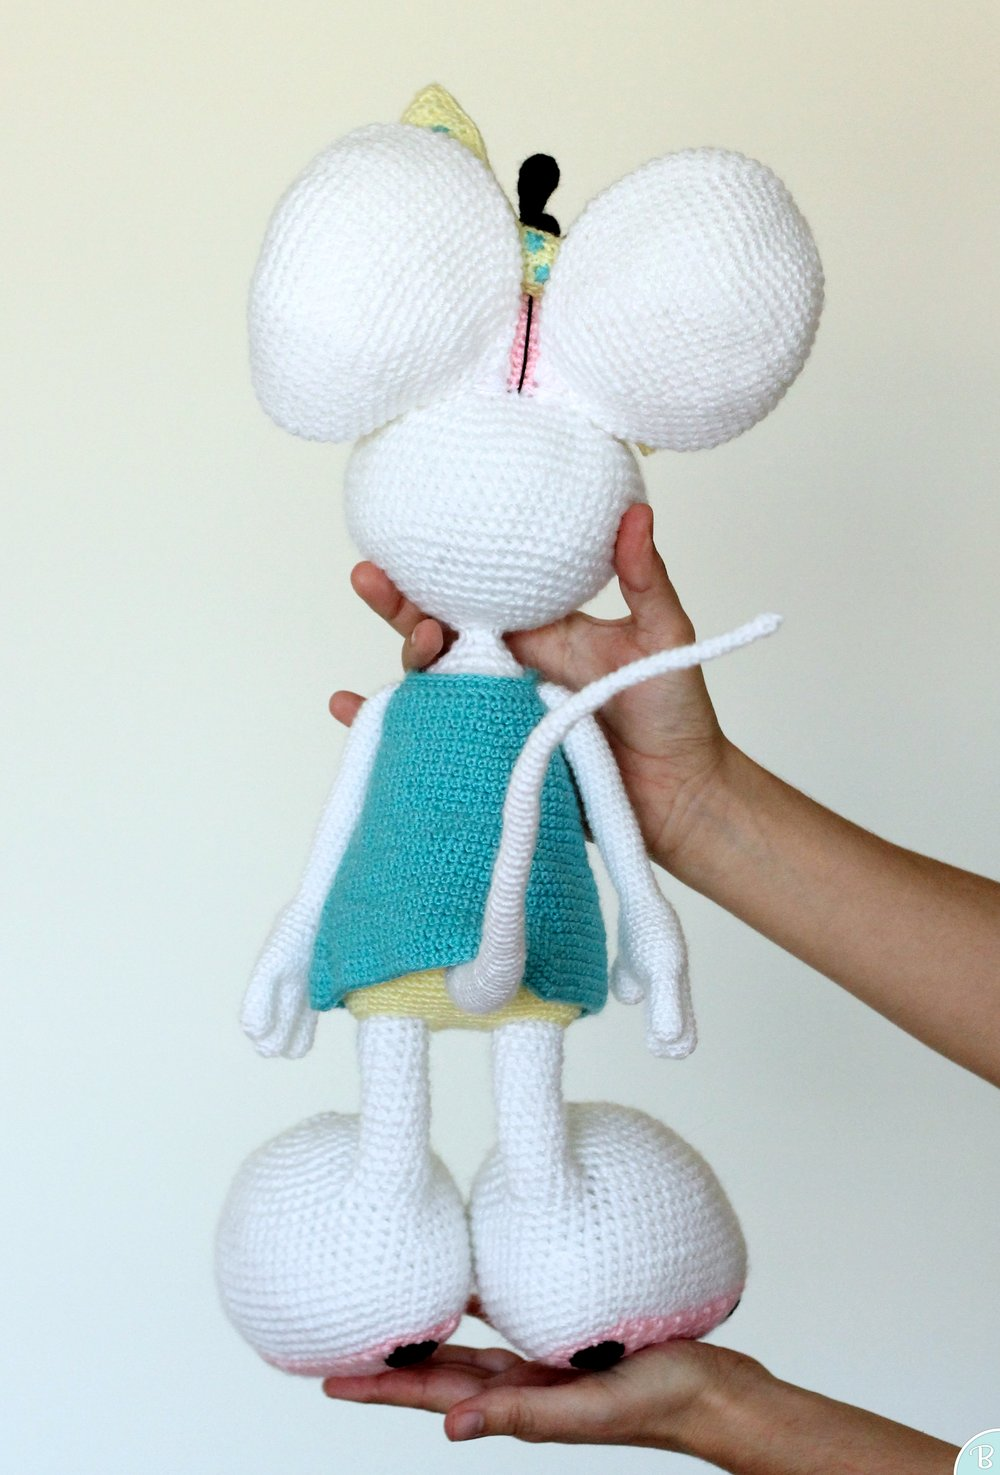 White mouse amigurumi plush